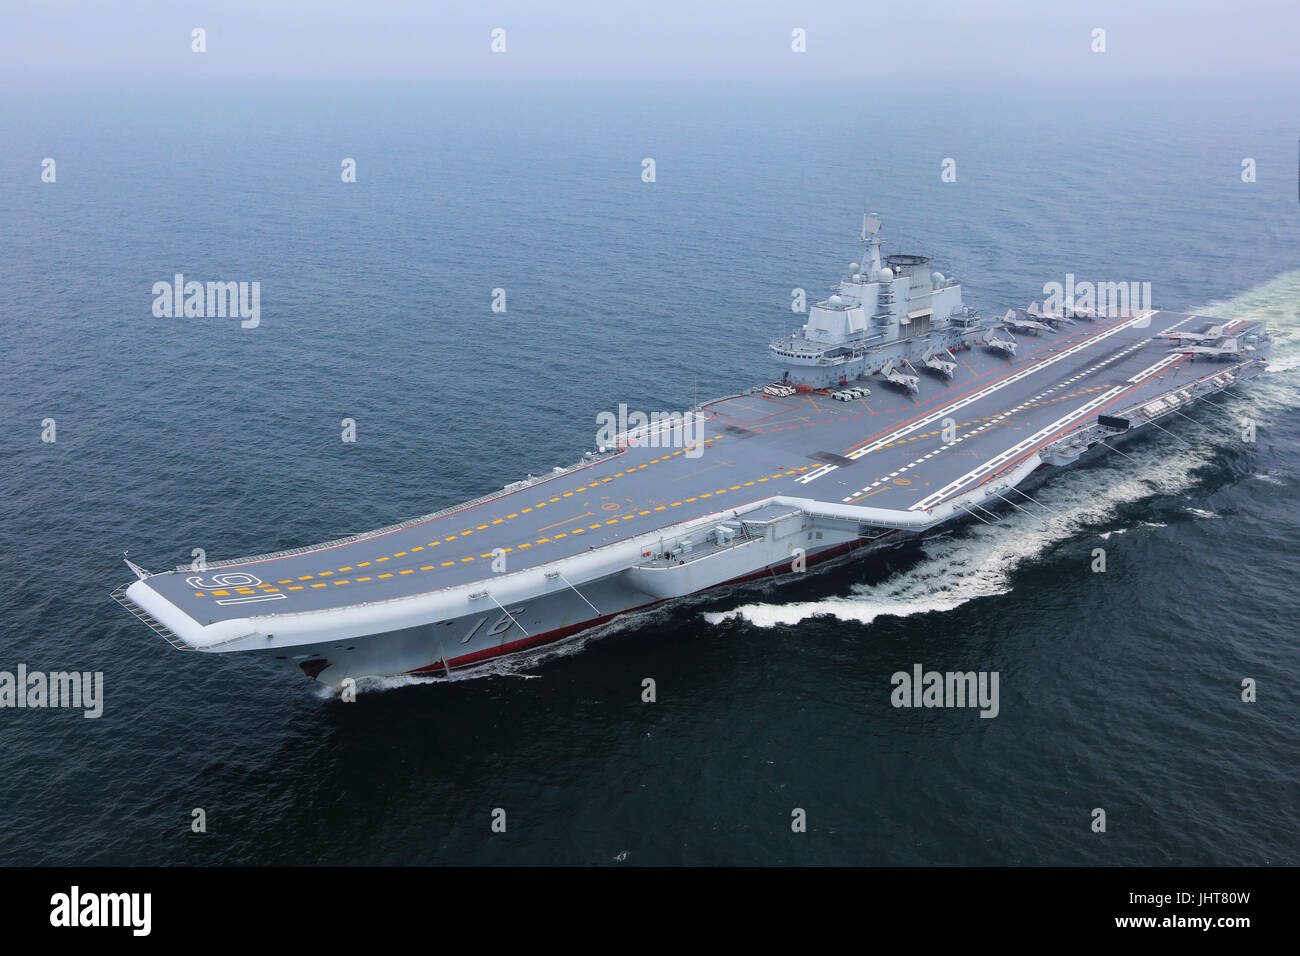 China S Aircraft Carrier Versus Other World Powers Carriers Business Insider